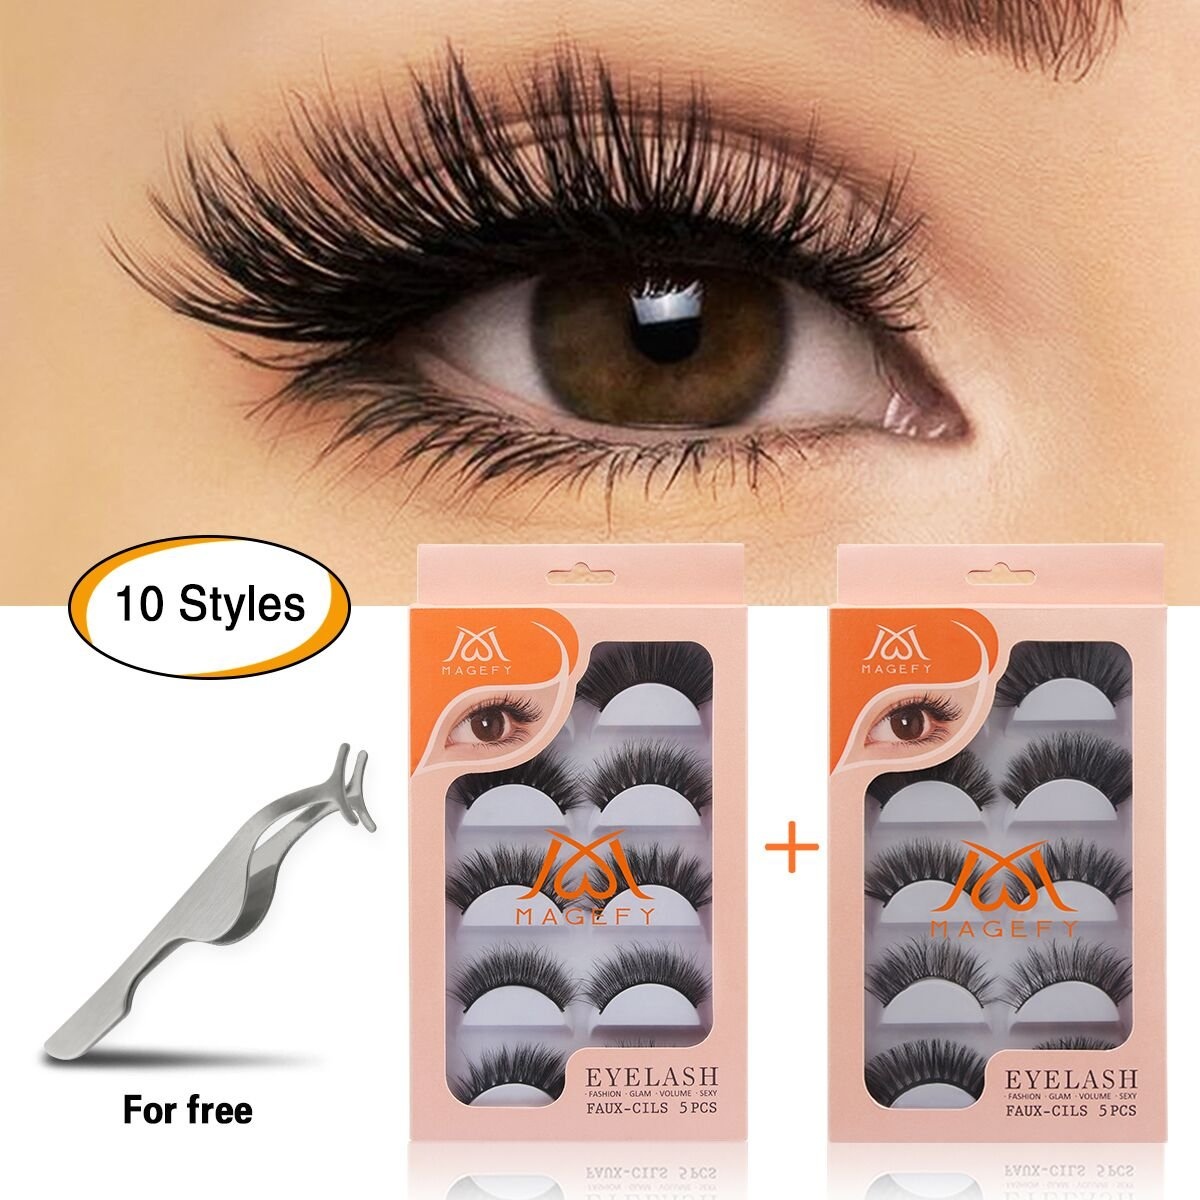 78cc9d84ea2 Amazon.com: MAGEFY 10 Pairs Fake Eyelashes Reusable 3D Handmade False  Eyelashes Set for Natural Look with False Lashes Applicator-10 Styles:  Beauty